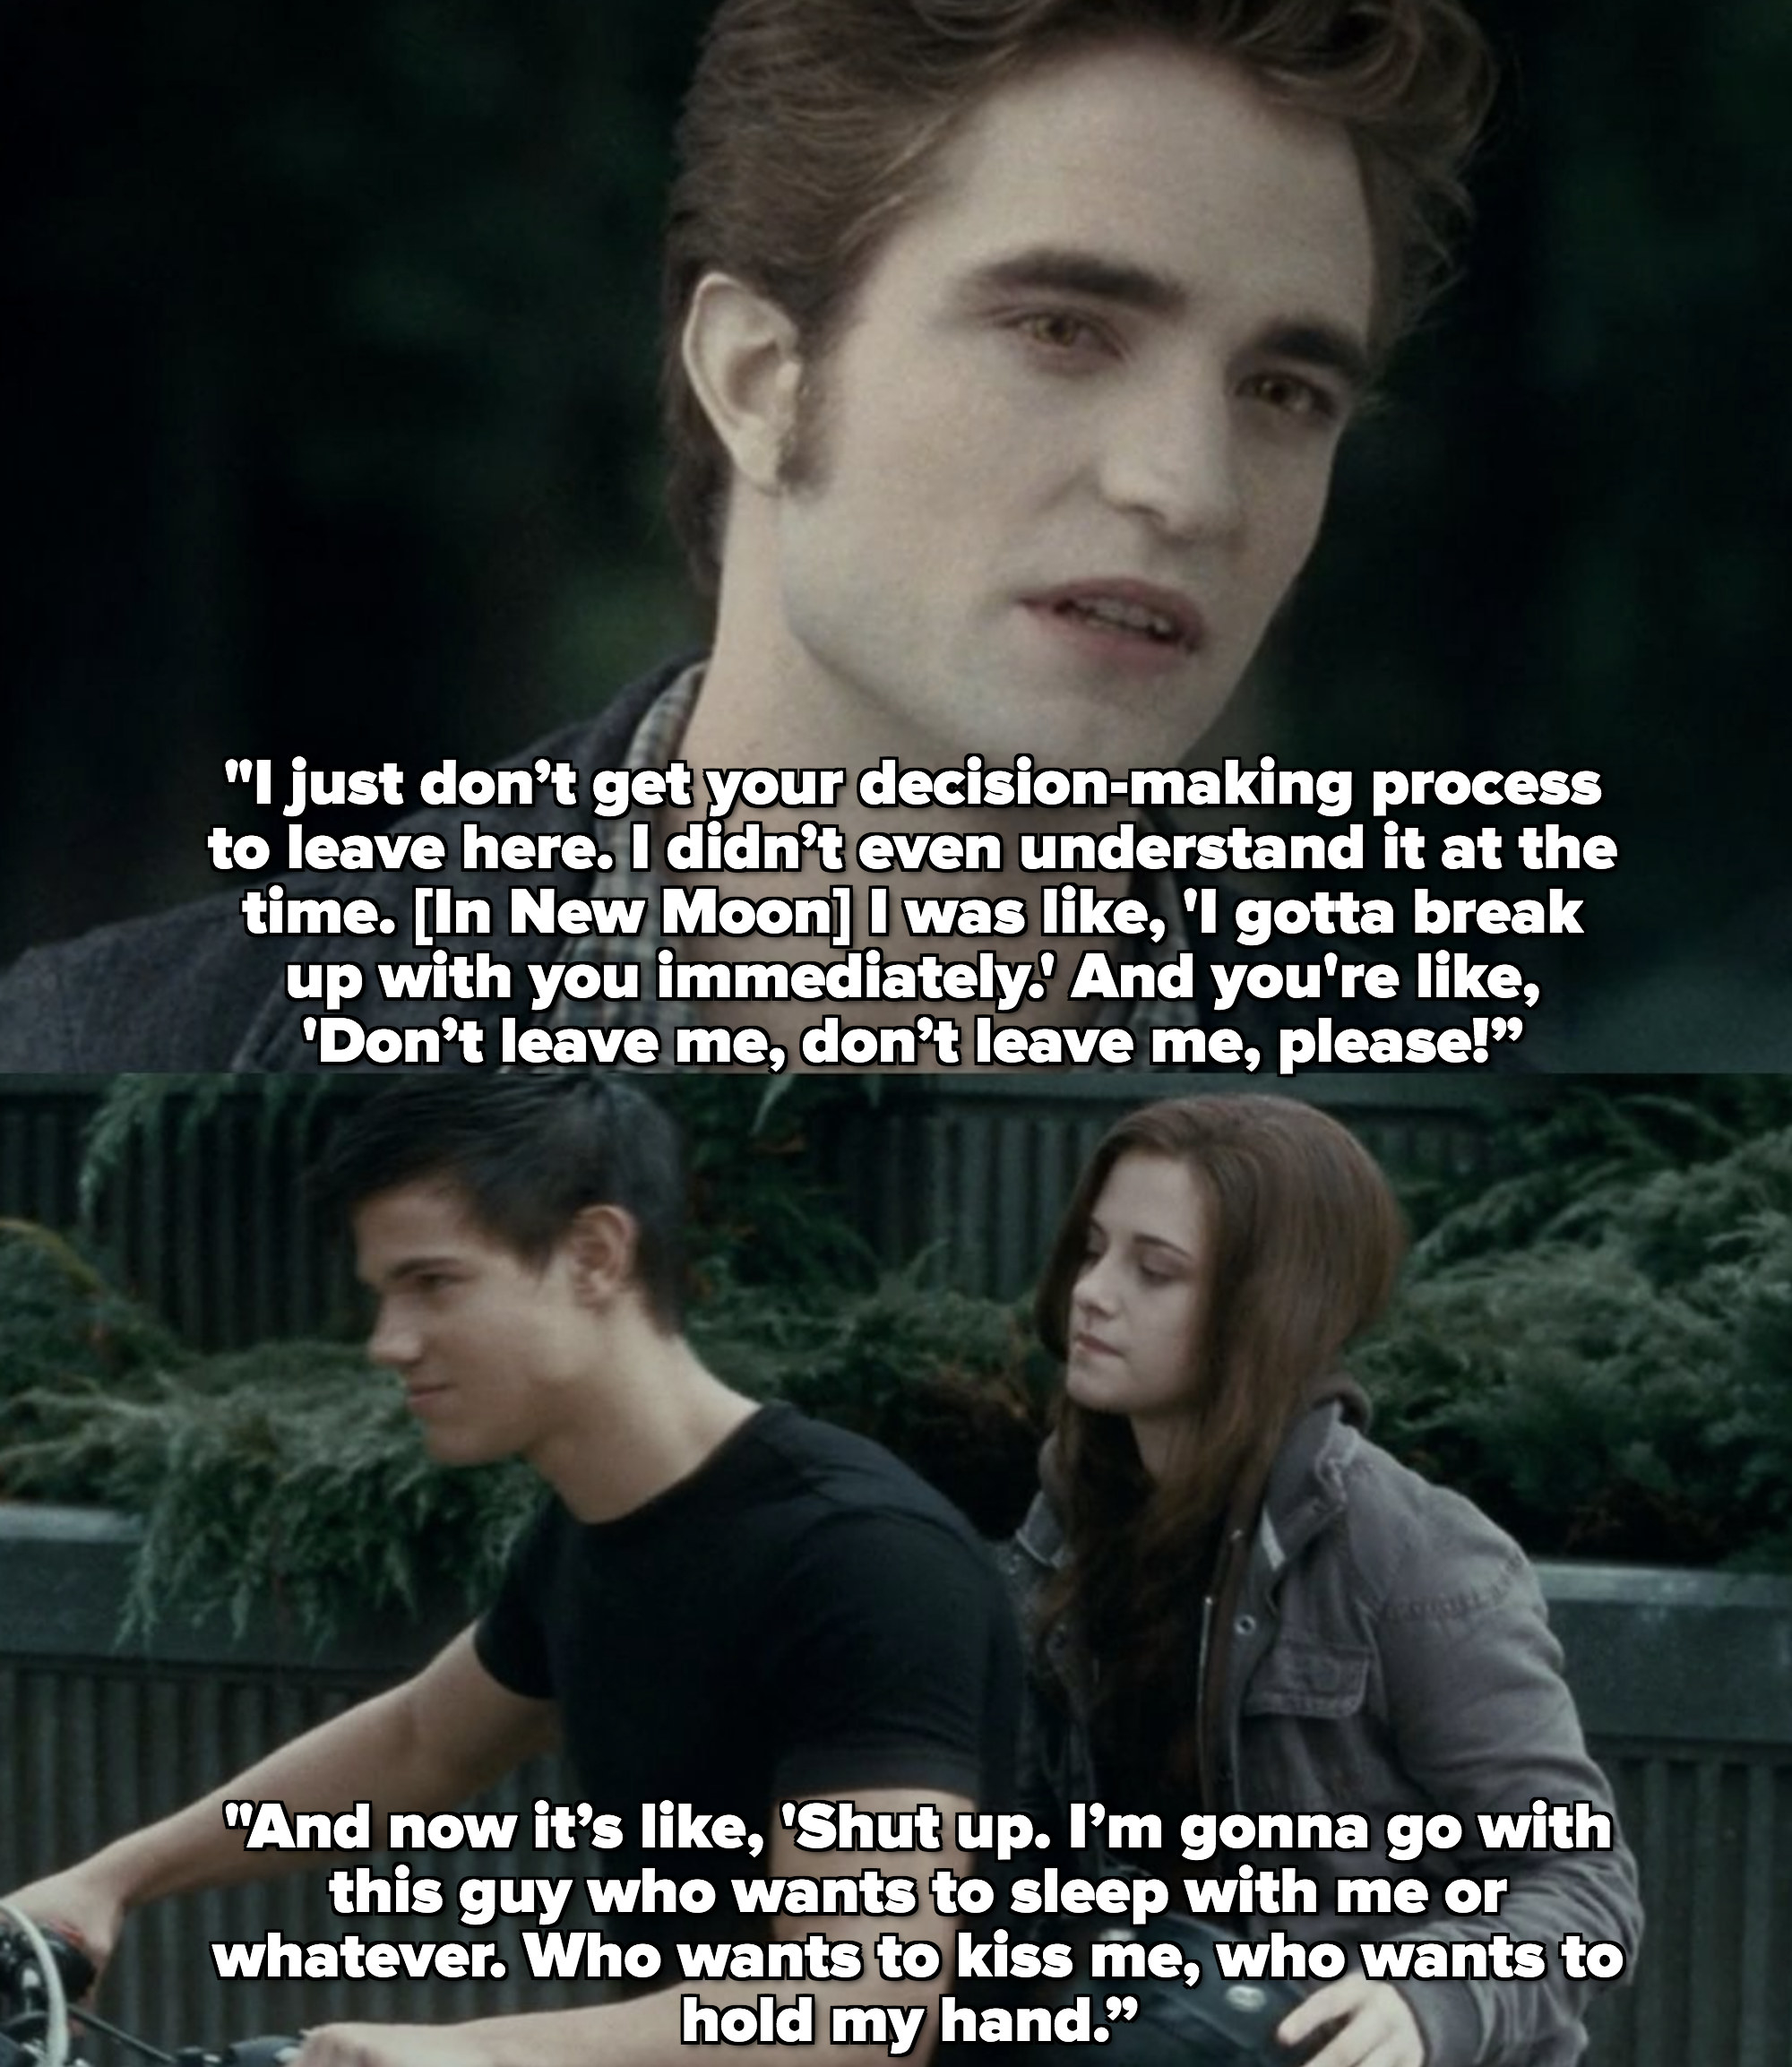 """Rob: I just don't get your decision-making process to leave here. [In New Moon] I didn't even understand it at the time. I was like, I gotta break up with you immediately."""""""